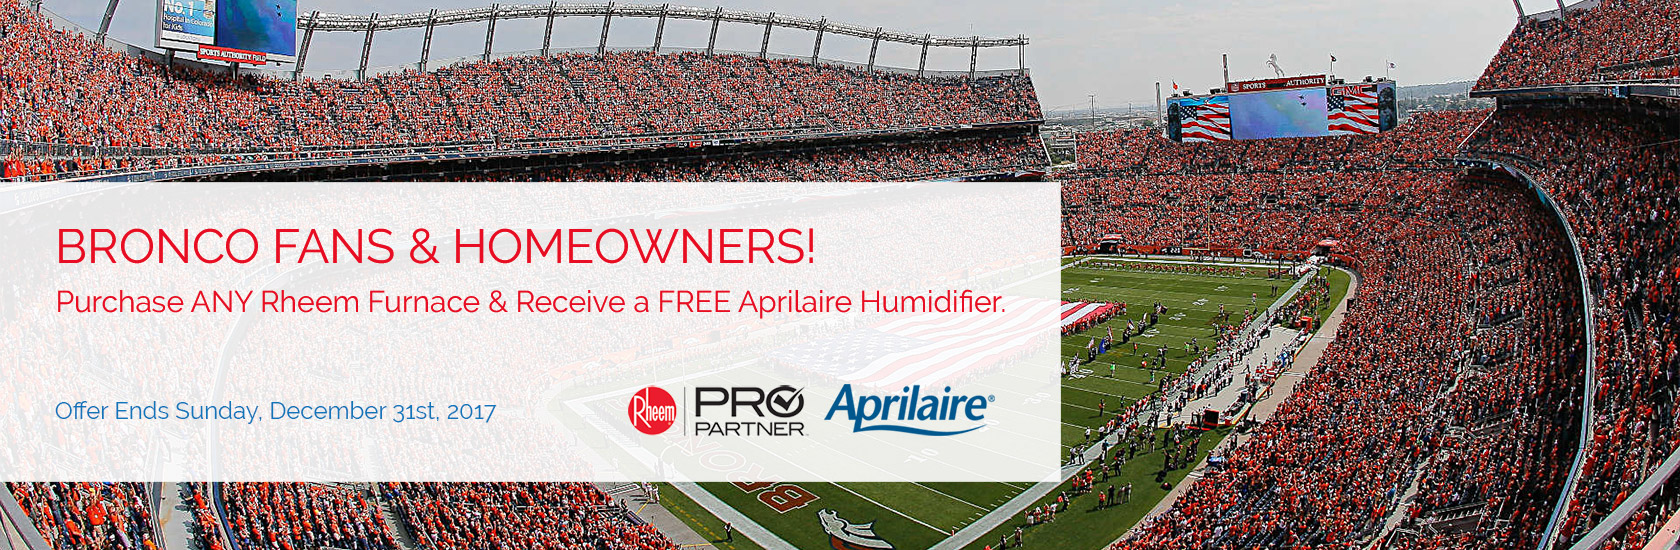 FREE Aprilaire 600M whole-home humidifier with the purchase of ANY Rheem furnace